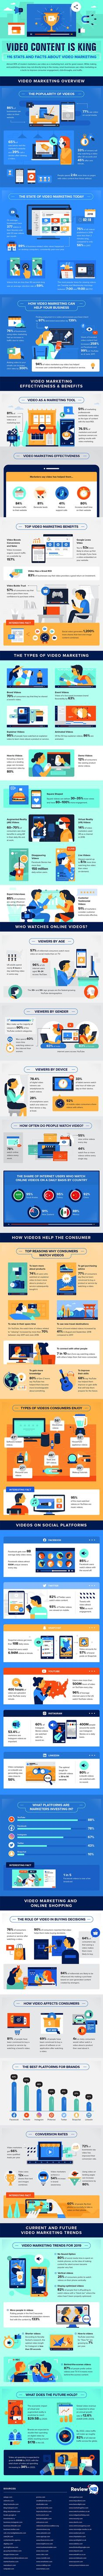 116 Video Marketing Stats to Guide Your Online Marketing Strategy in 2020 [Infographic] Marketing Process, Online Marketing Strategies, Content Marketing, Media Marketing, Marketing News, Affiliate Marketing, Business Video, Business Tips, Video Advertising